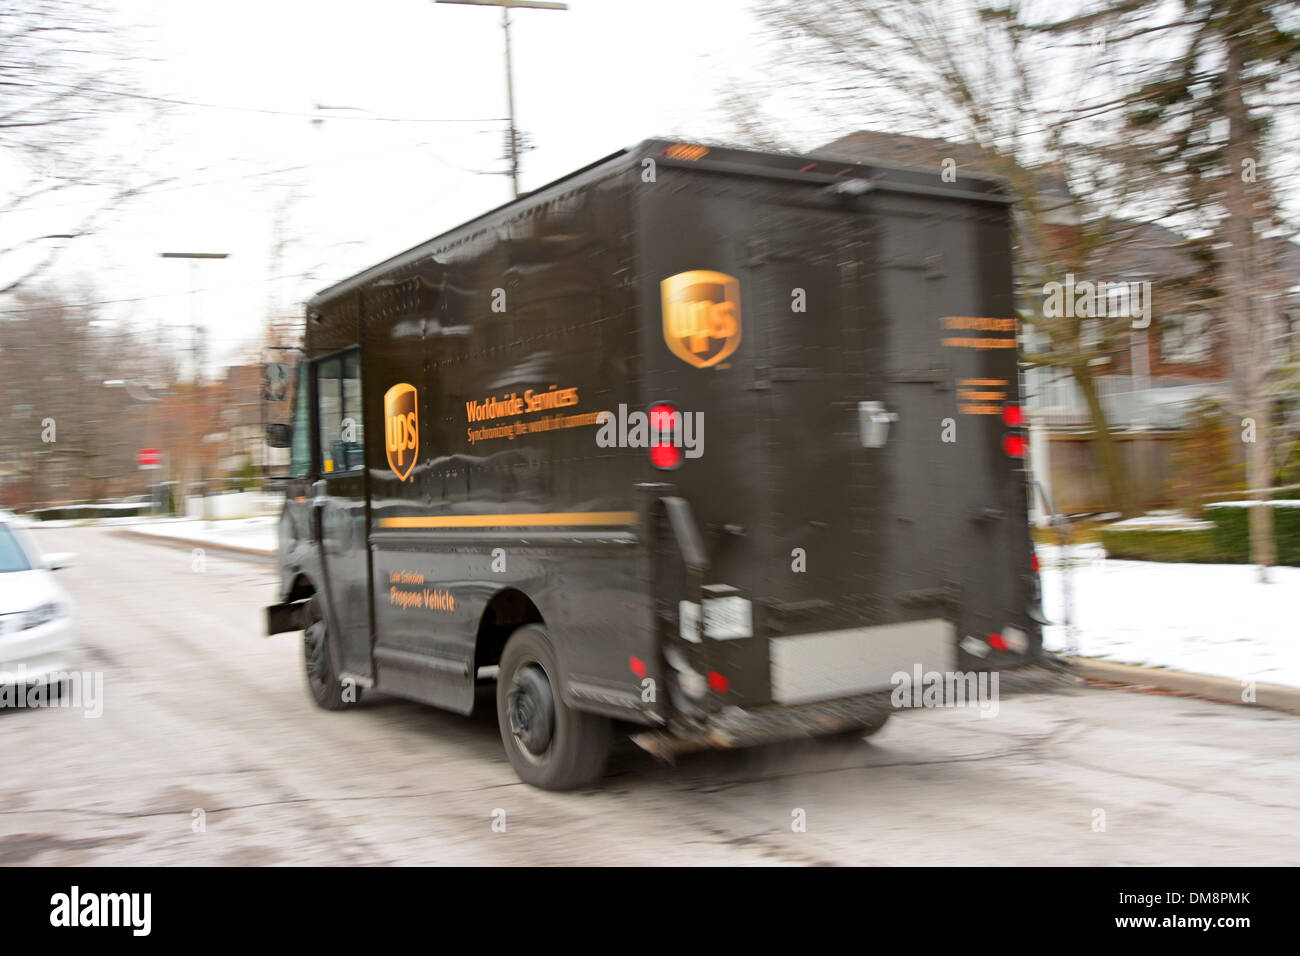 UPS truck in Toronto, Canada - Stock Image